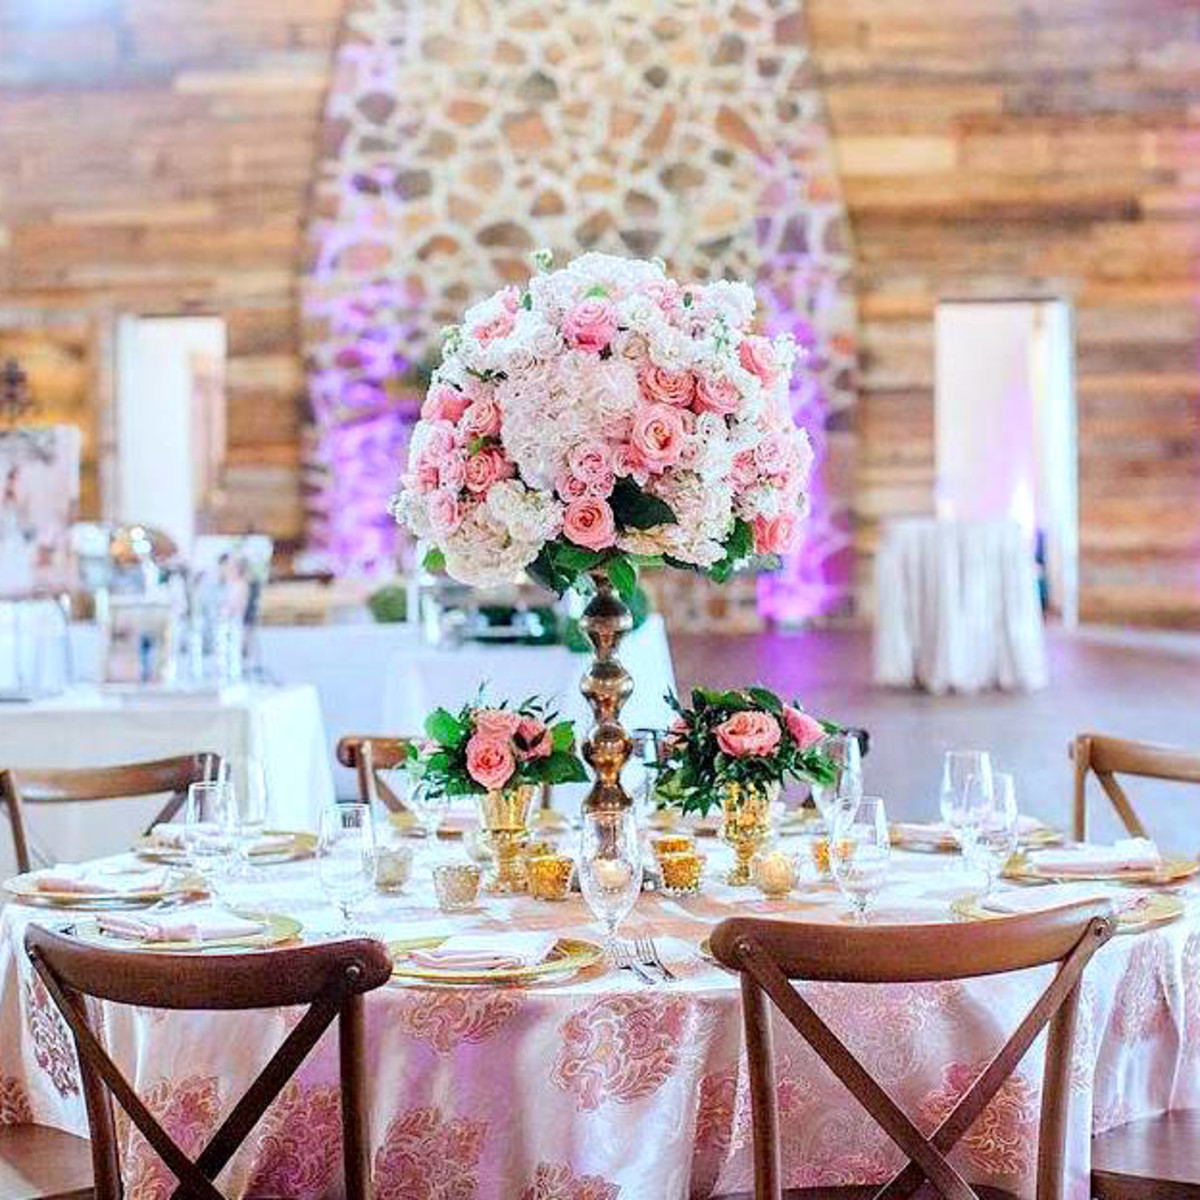 Houston, new wedding event venues, September 2017, The Vine